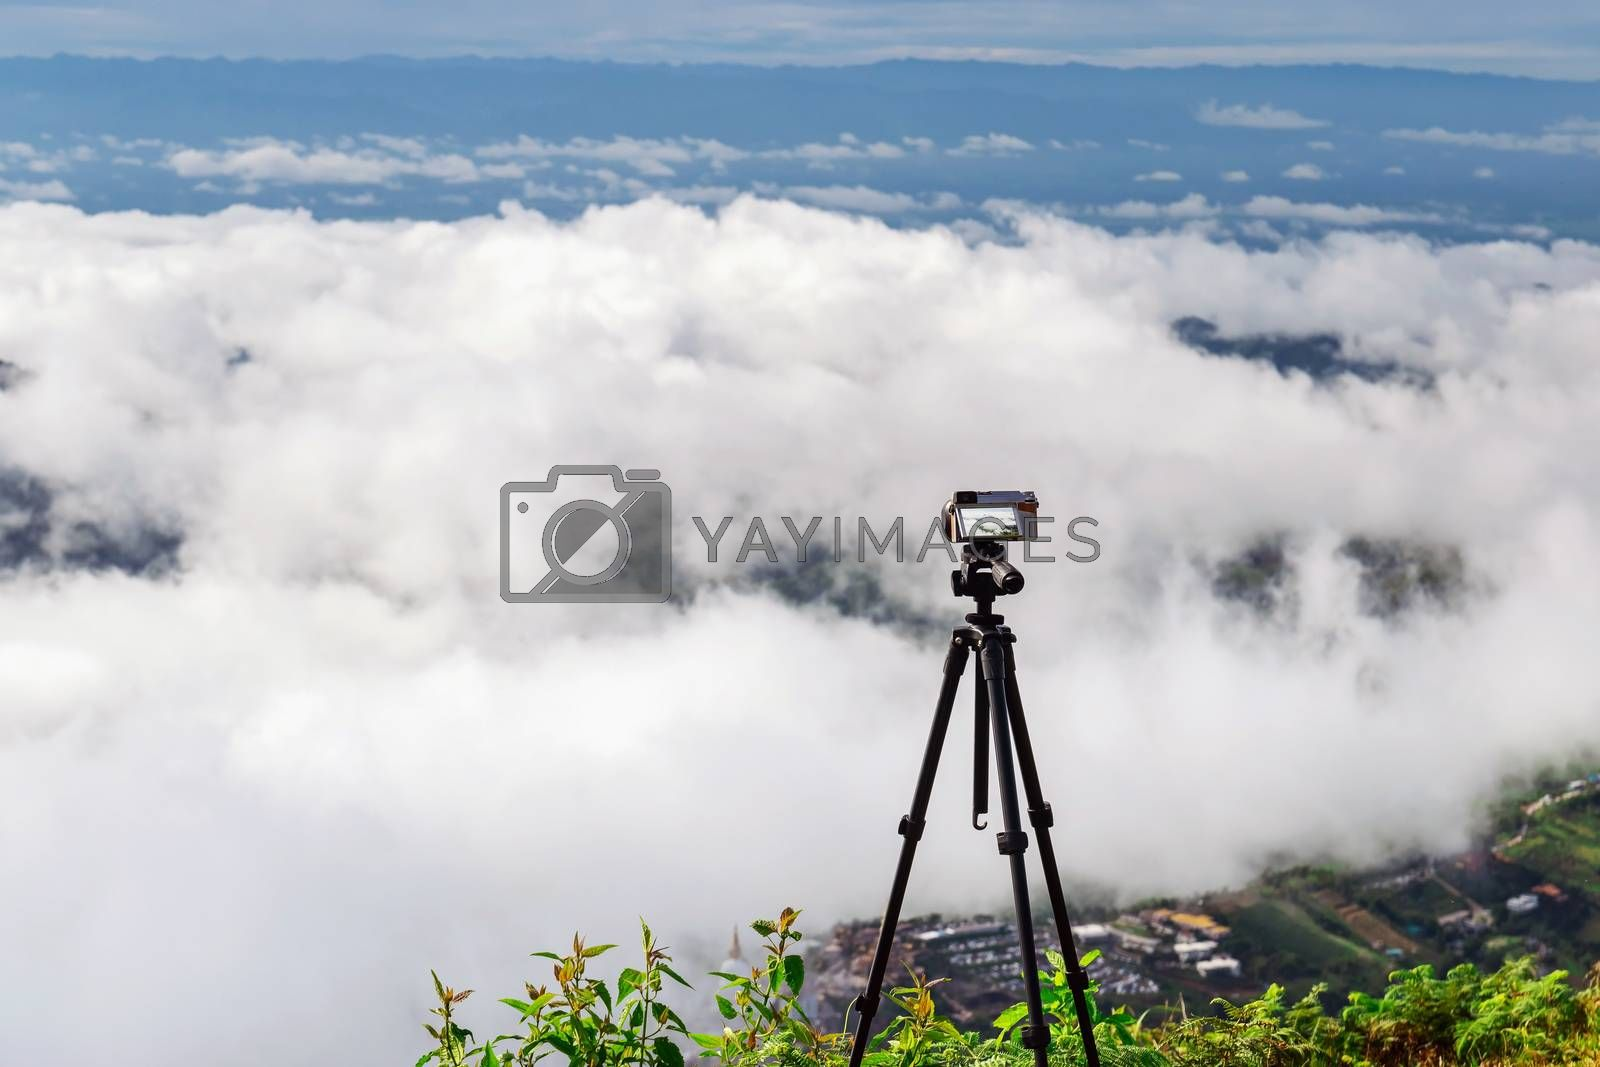 Set a digital camera on a tripod to capture the view of the sky, clouds and mountains.